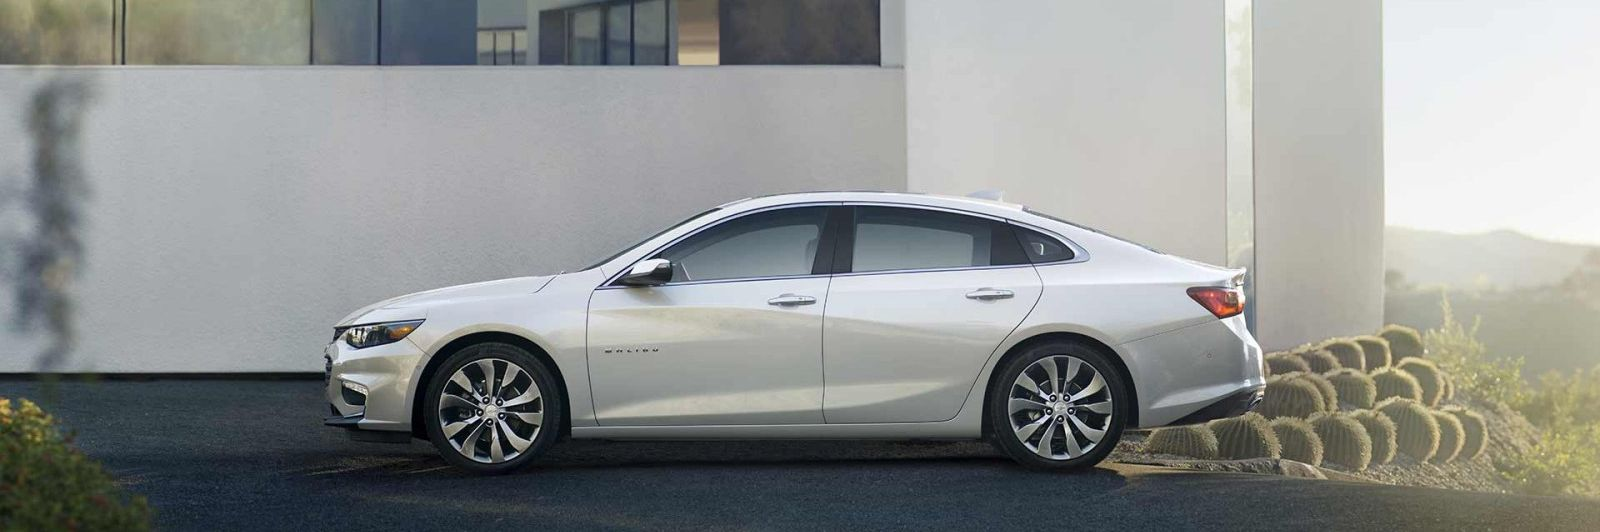 2017 Chevrolet Malibu for Sale in Chantilly, VA